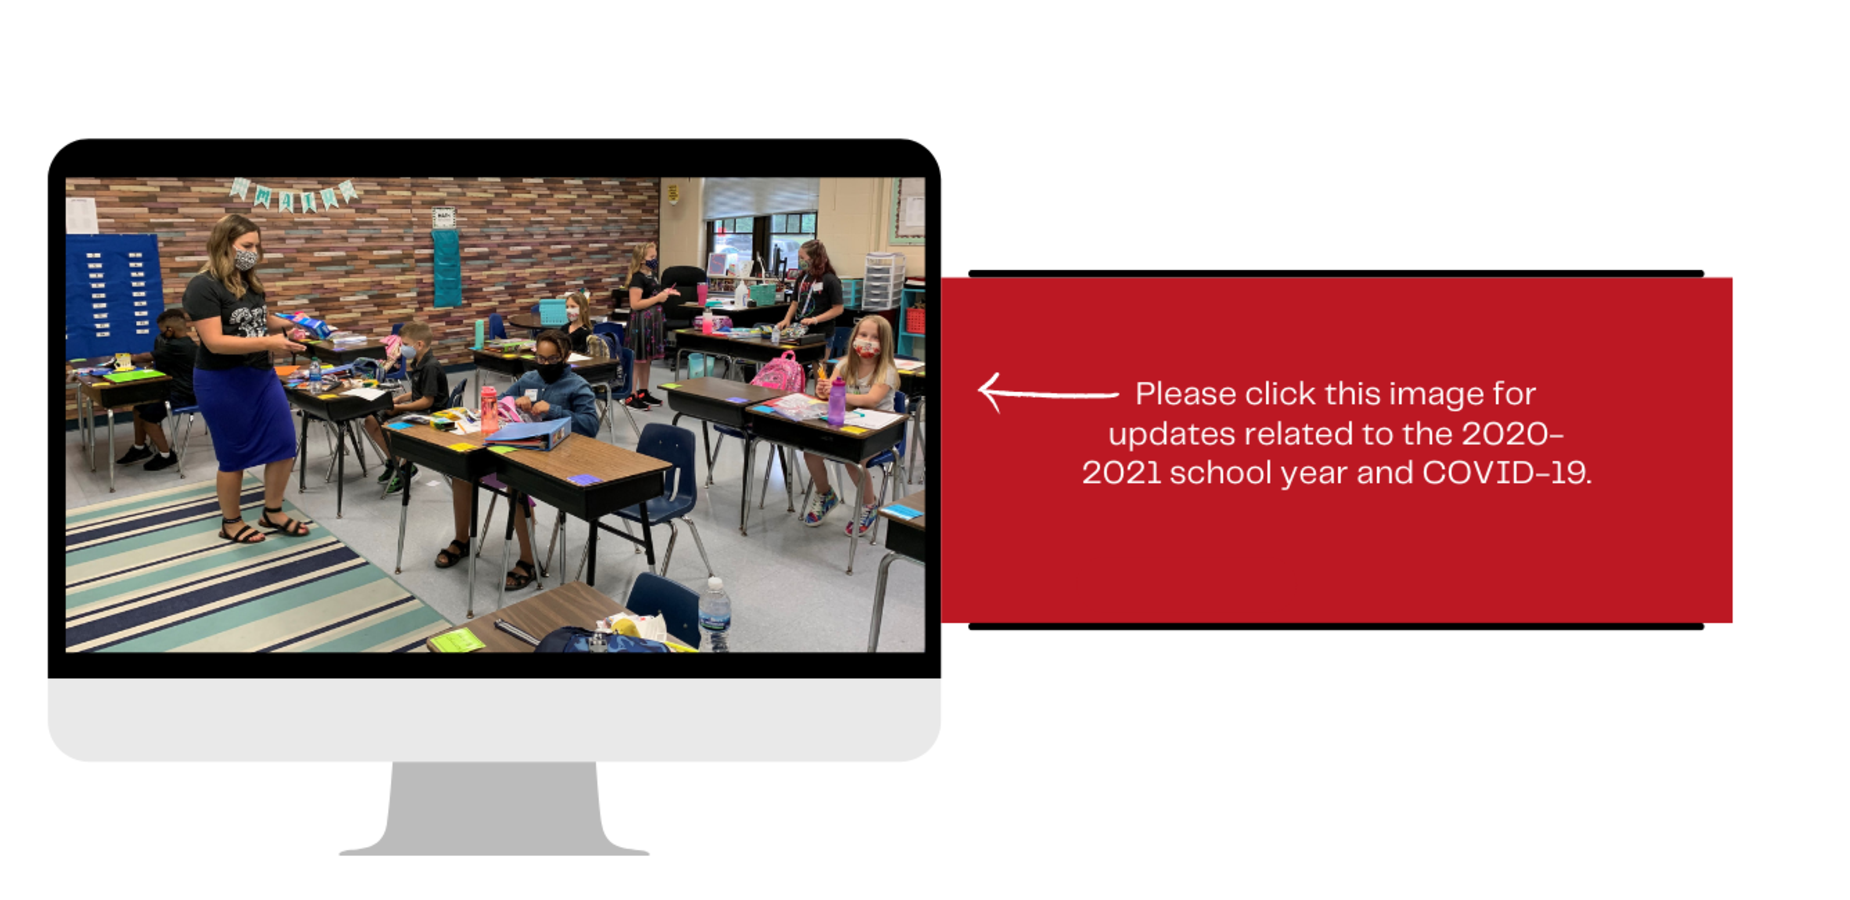 This is a graphic directing visitors to click the image to be taken to the 2020-21 school year and COVID-19 information page.